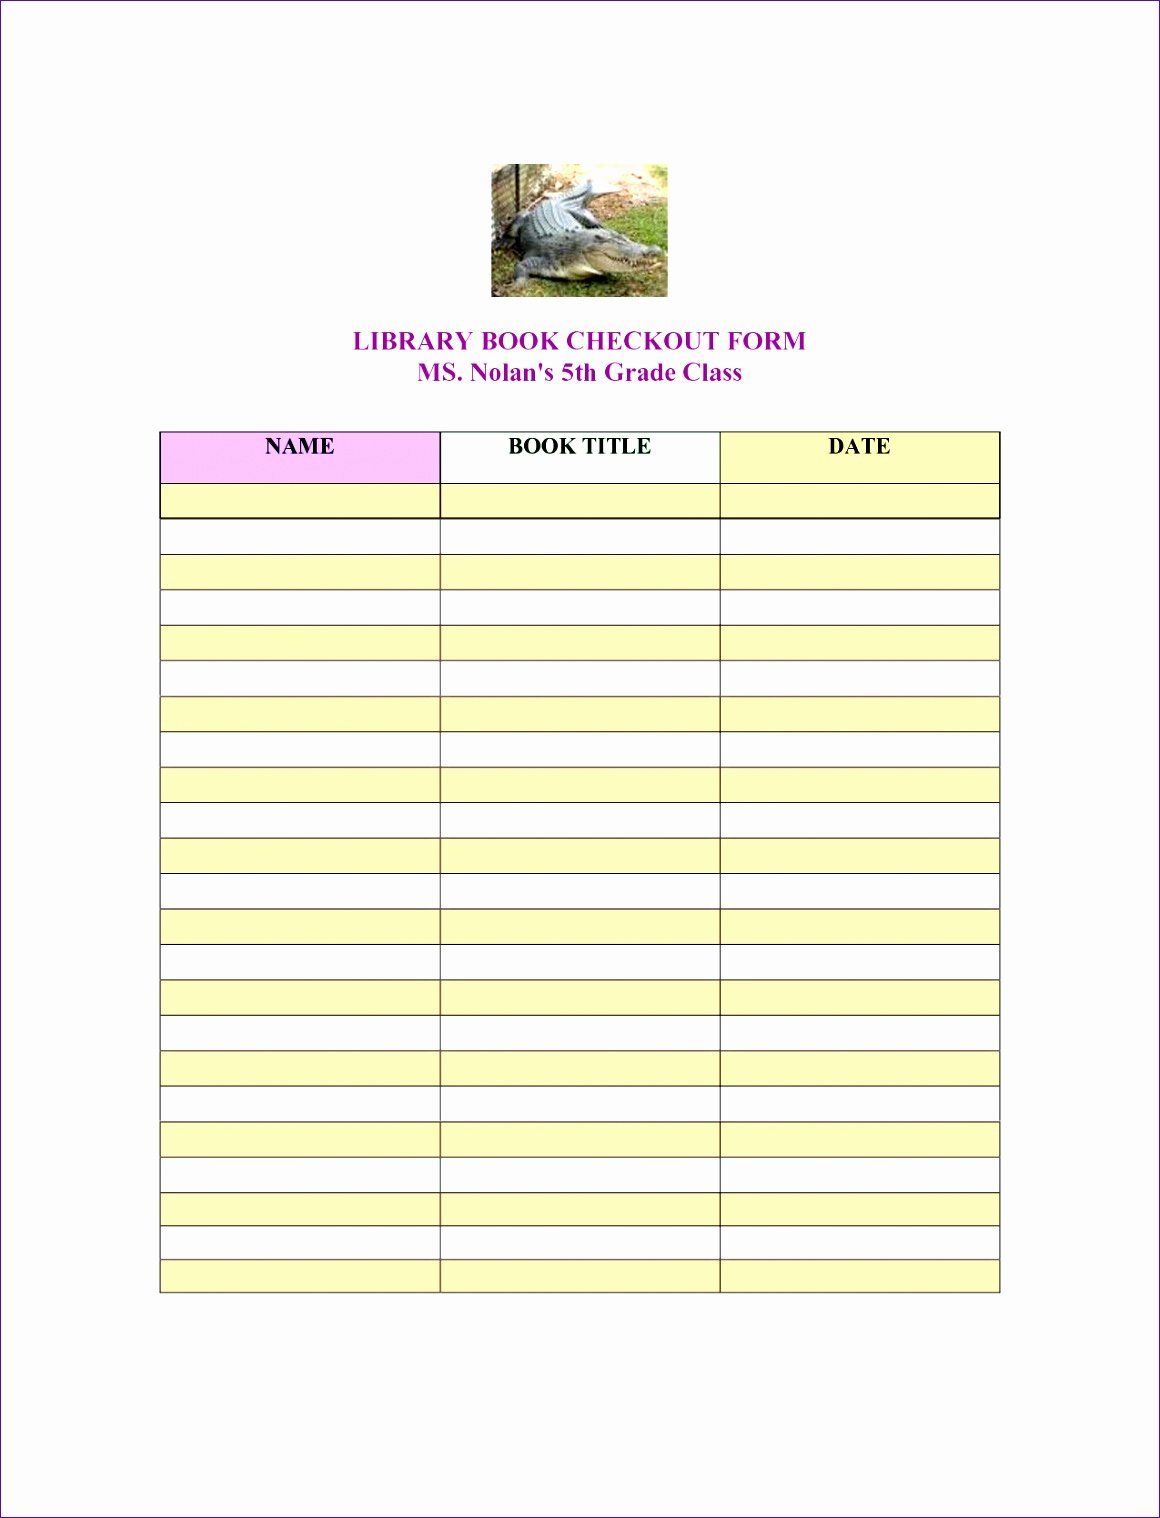 Library Checkout Card Template Fresh Library Book Checkout Sheet Haojc Ideas Best S